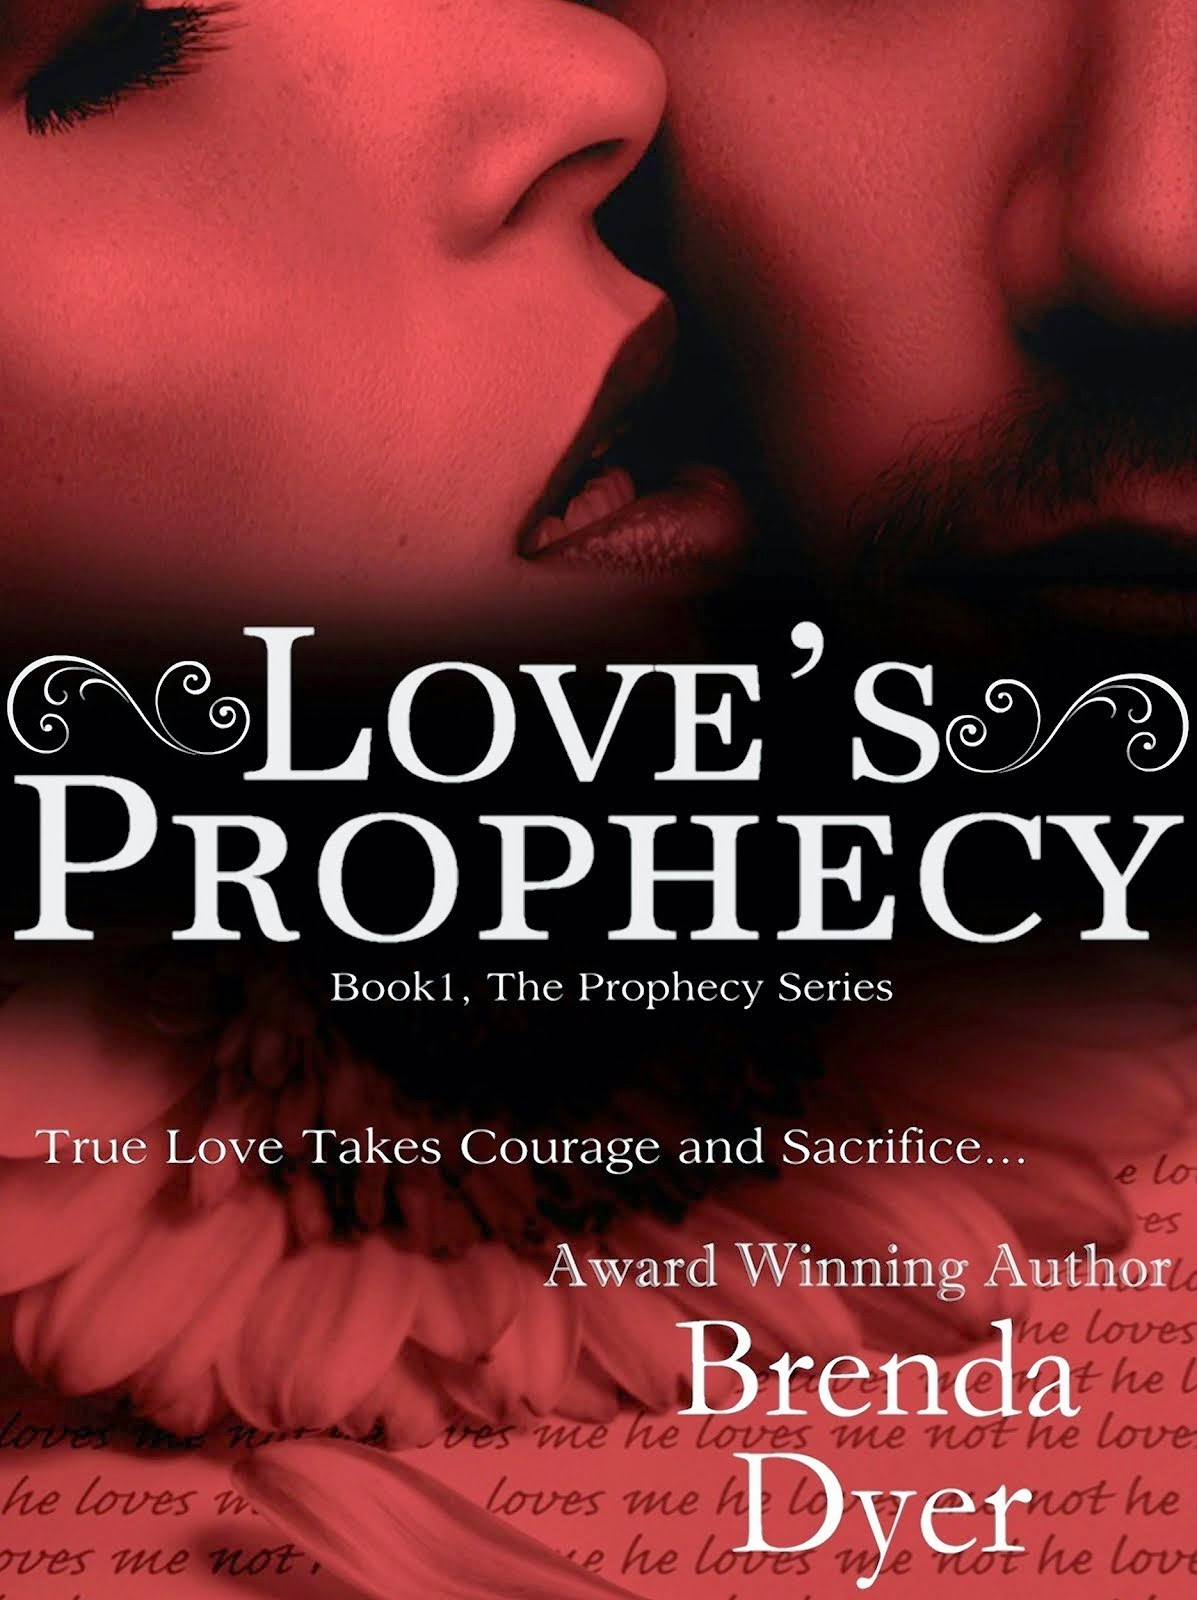 Love's Prophecy. Chapter 1